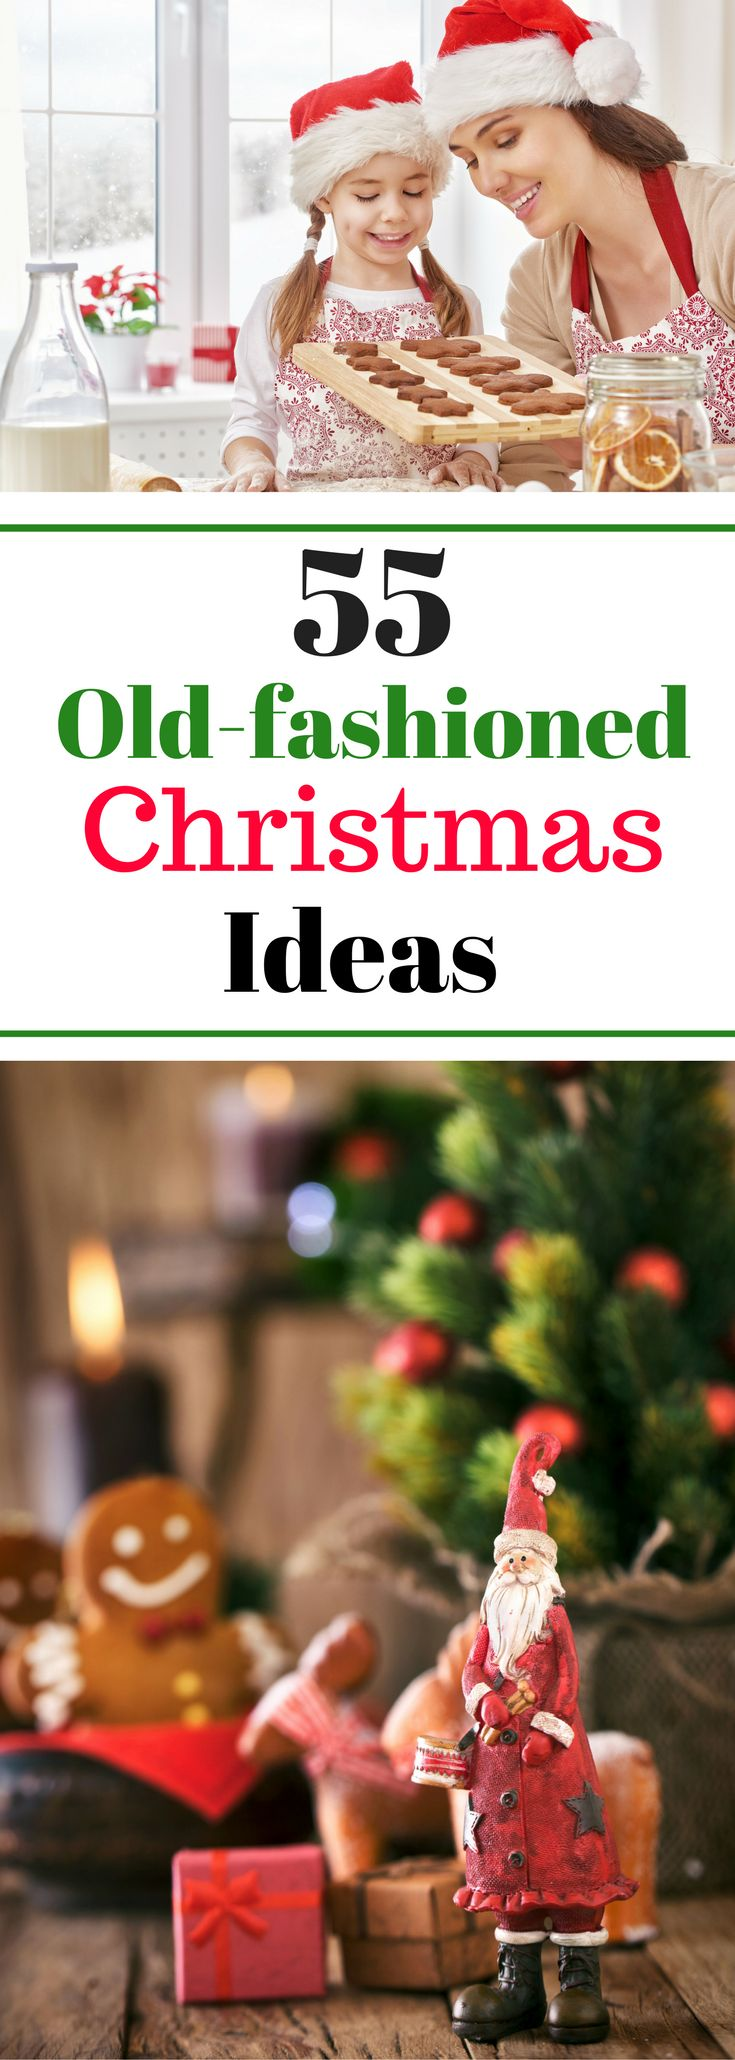 55 Old-fashioned Christmas Ideas - Best things to do at Christmas to make sure you cross everything off your bucket list.